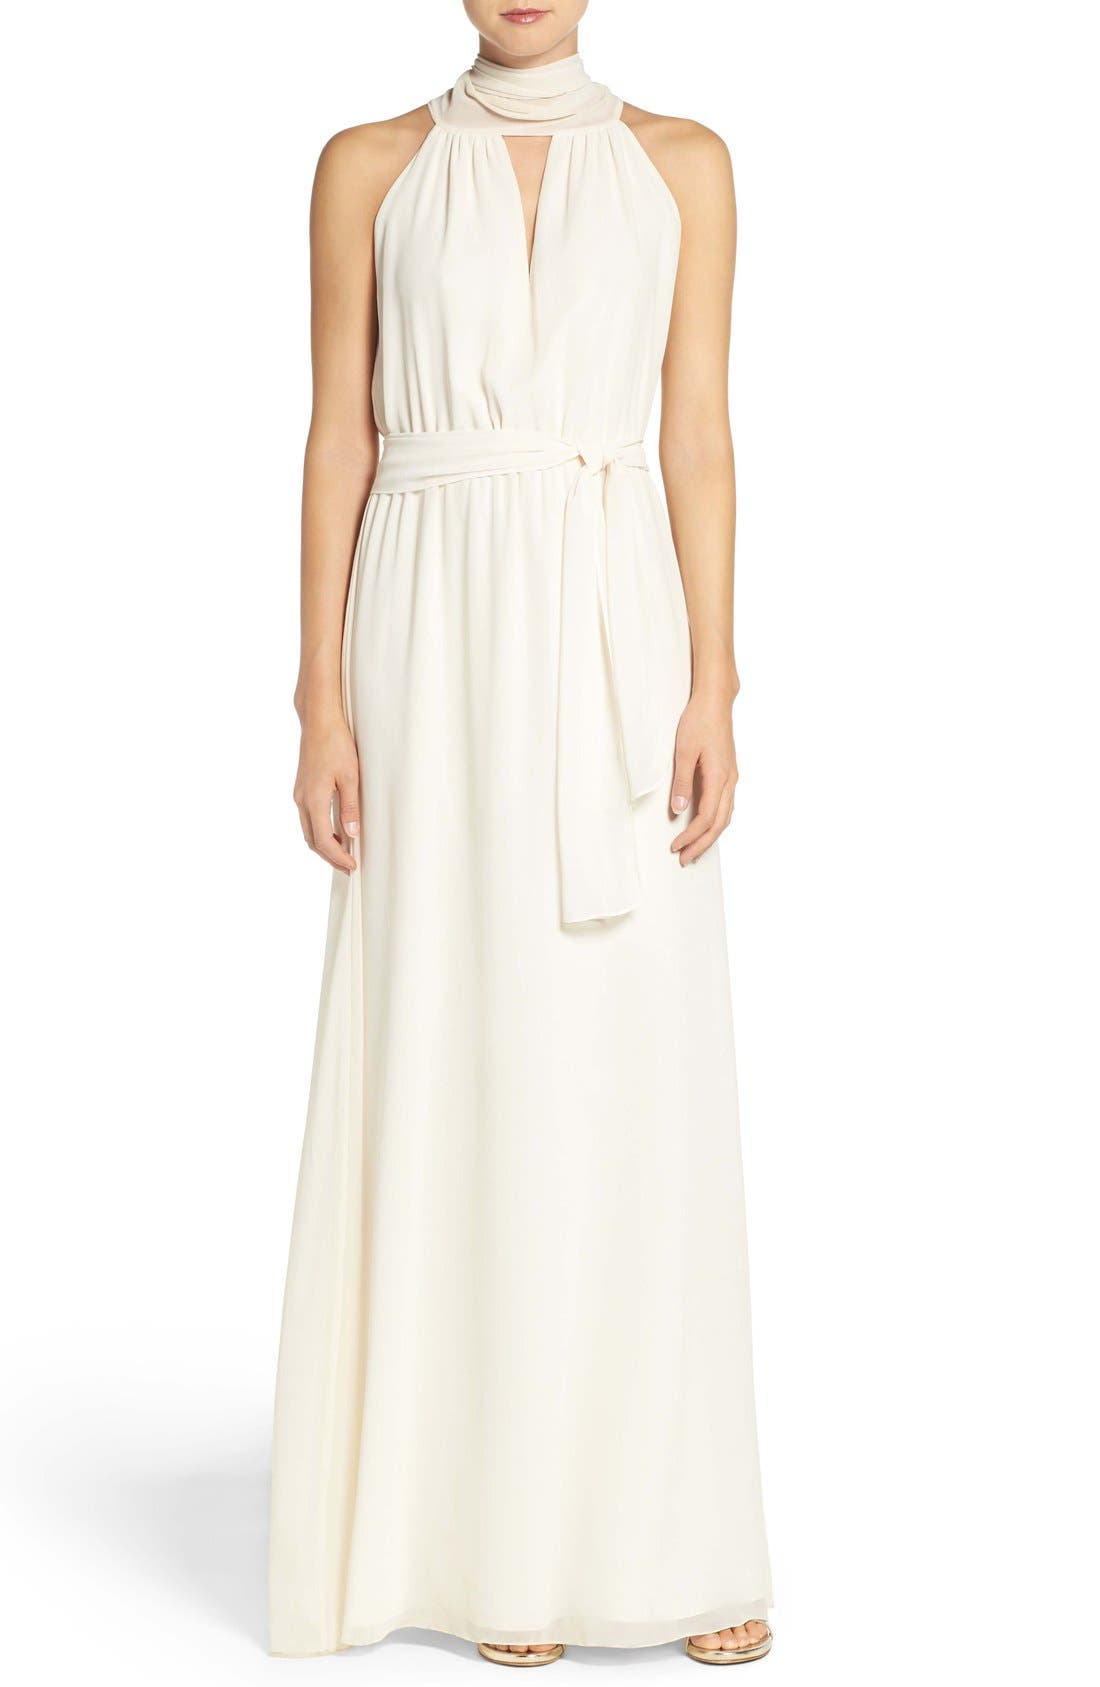 Main Image - Ceremony by Joanna August 'Riggs' Halter V-Neck Chiffon Gown